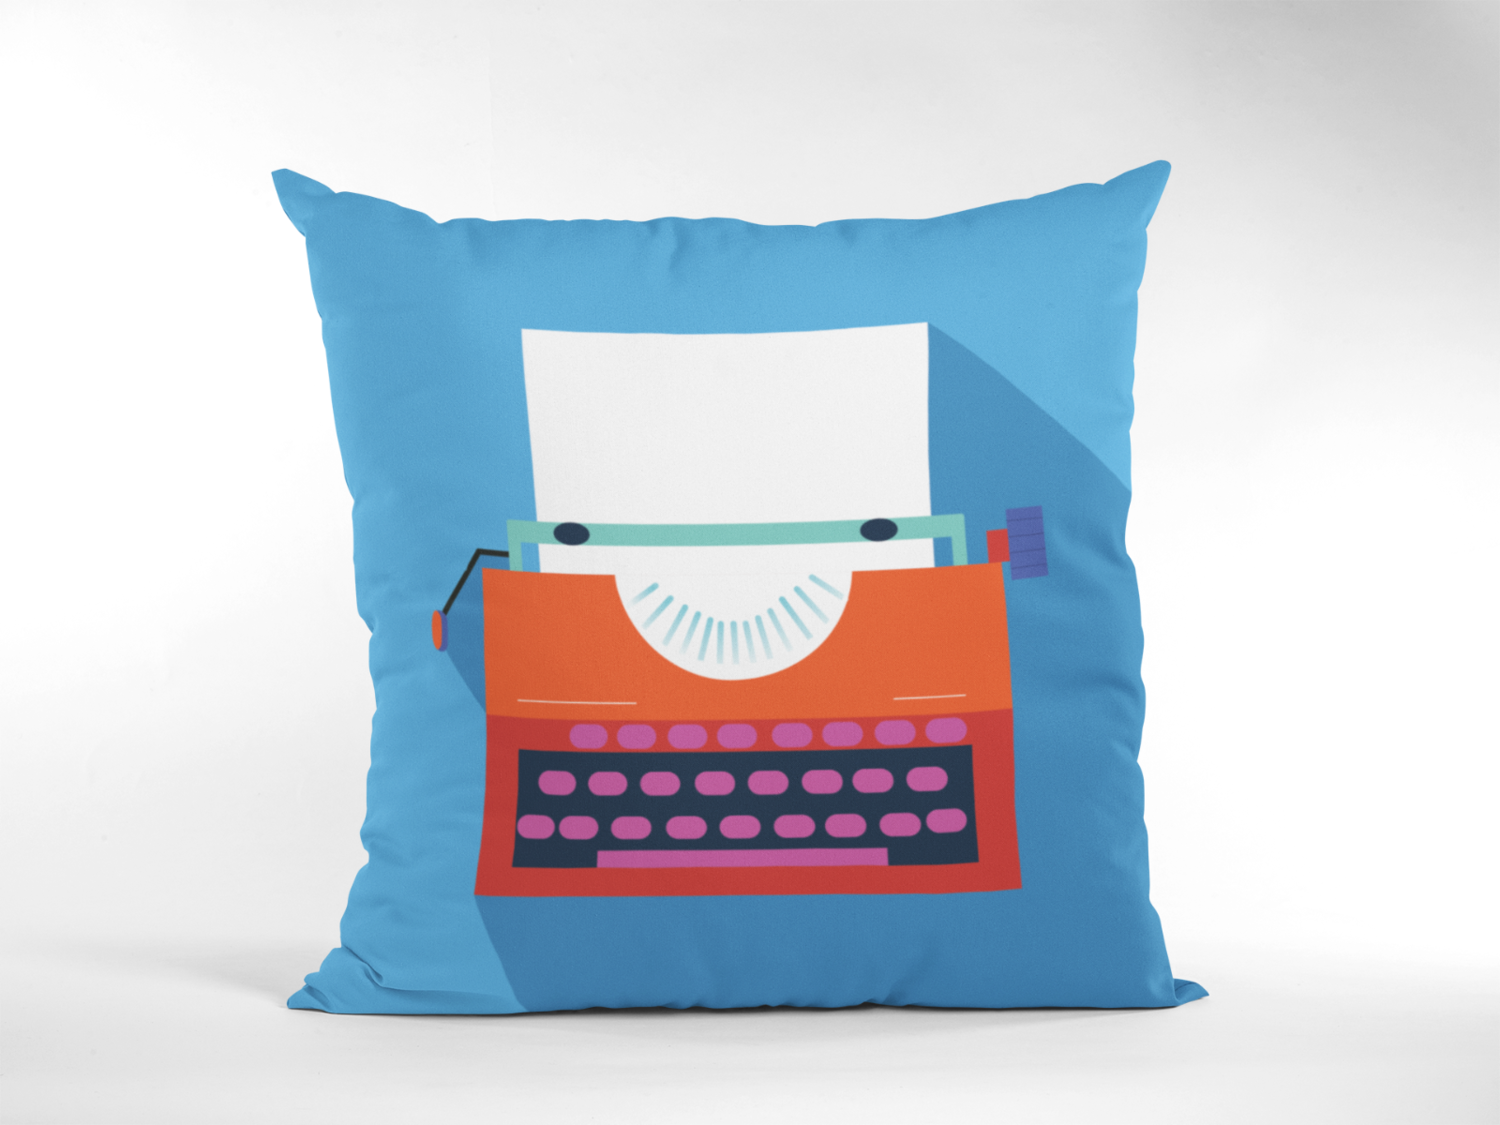 Typewriter Zipper Cushion Cover